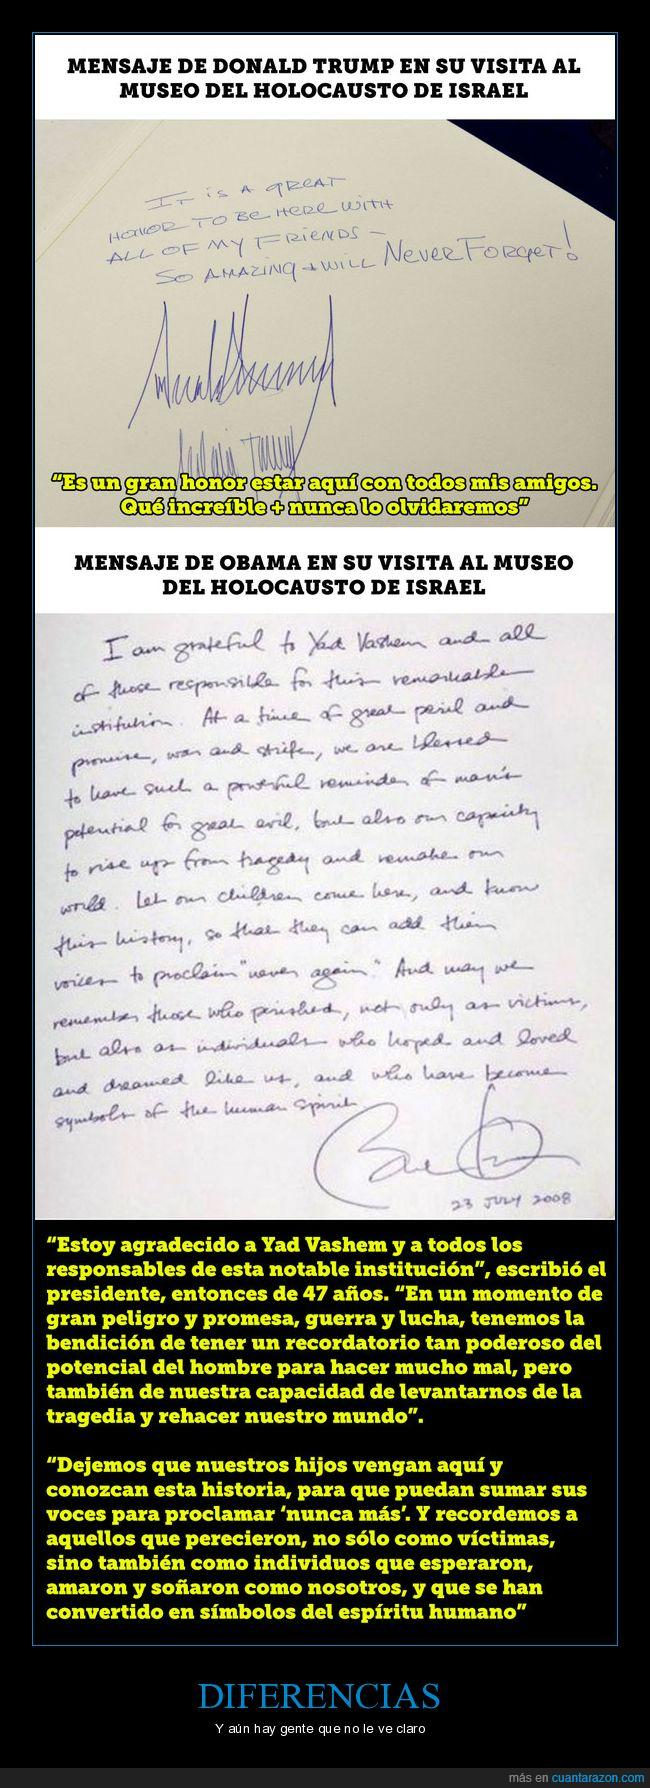 dedicatoria,donald trump,escrito,museo del  holocausto,obama